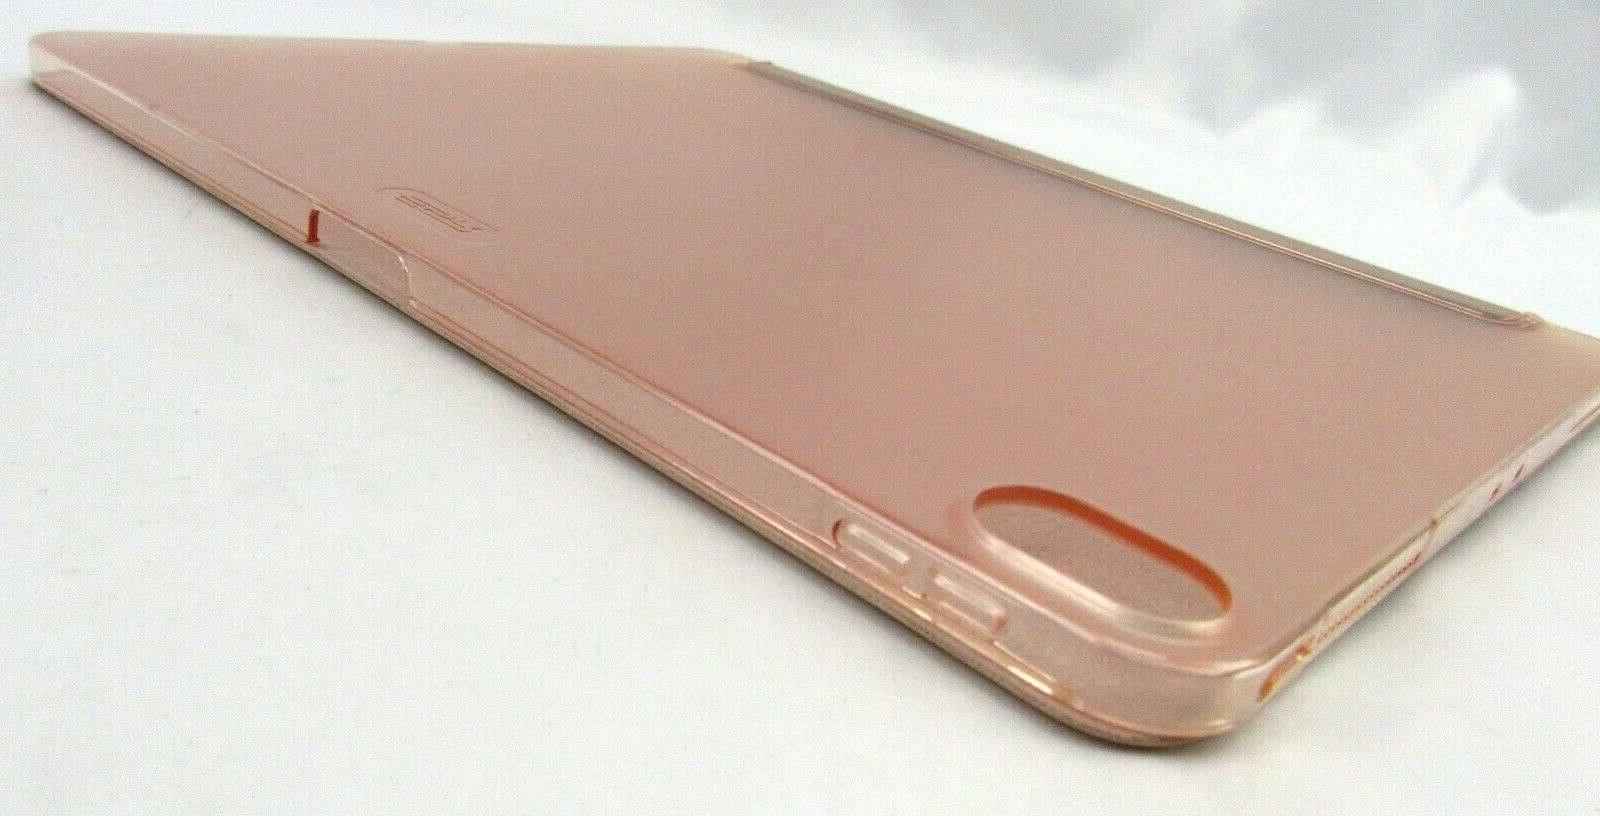 ESR Case Pro Rose Gold Pencil Not Supported